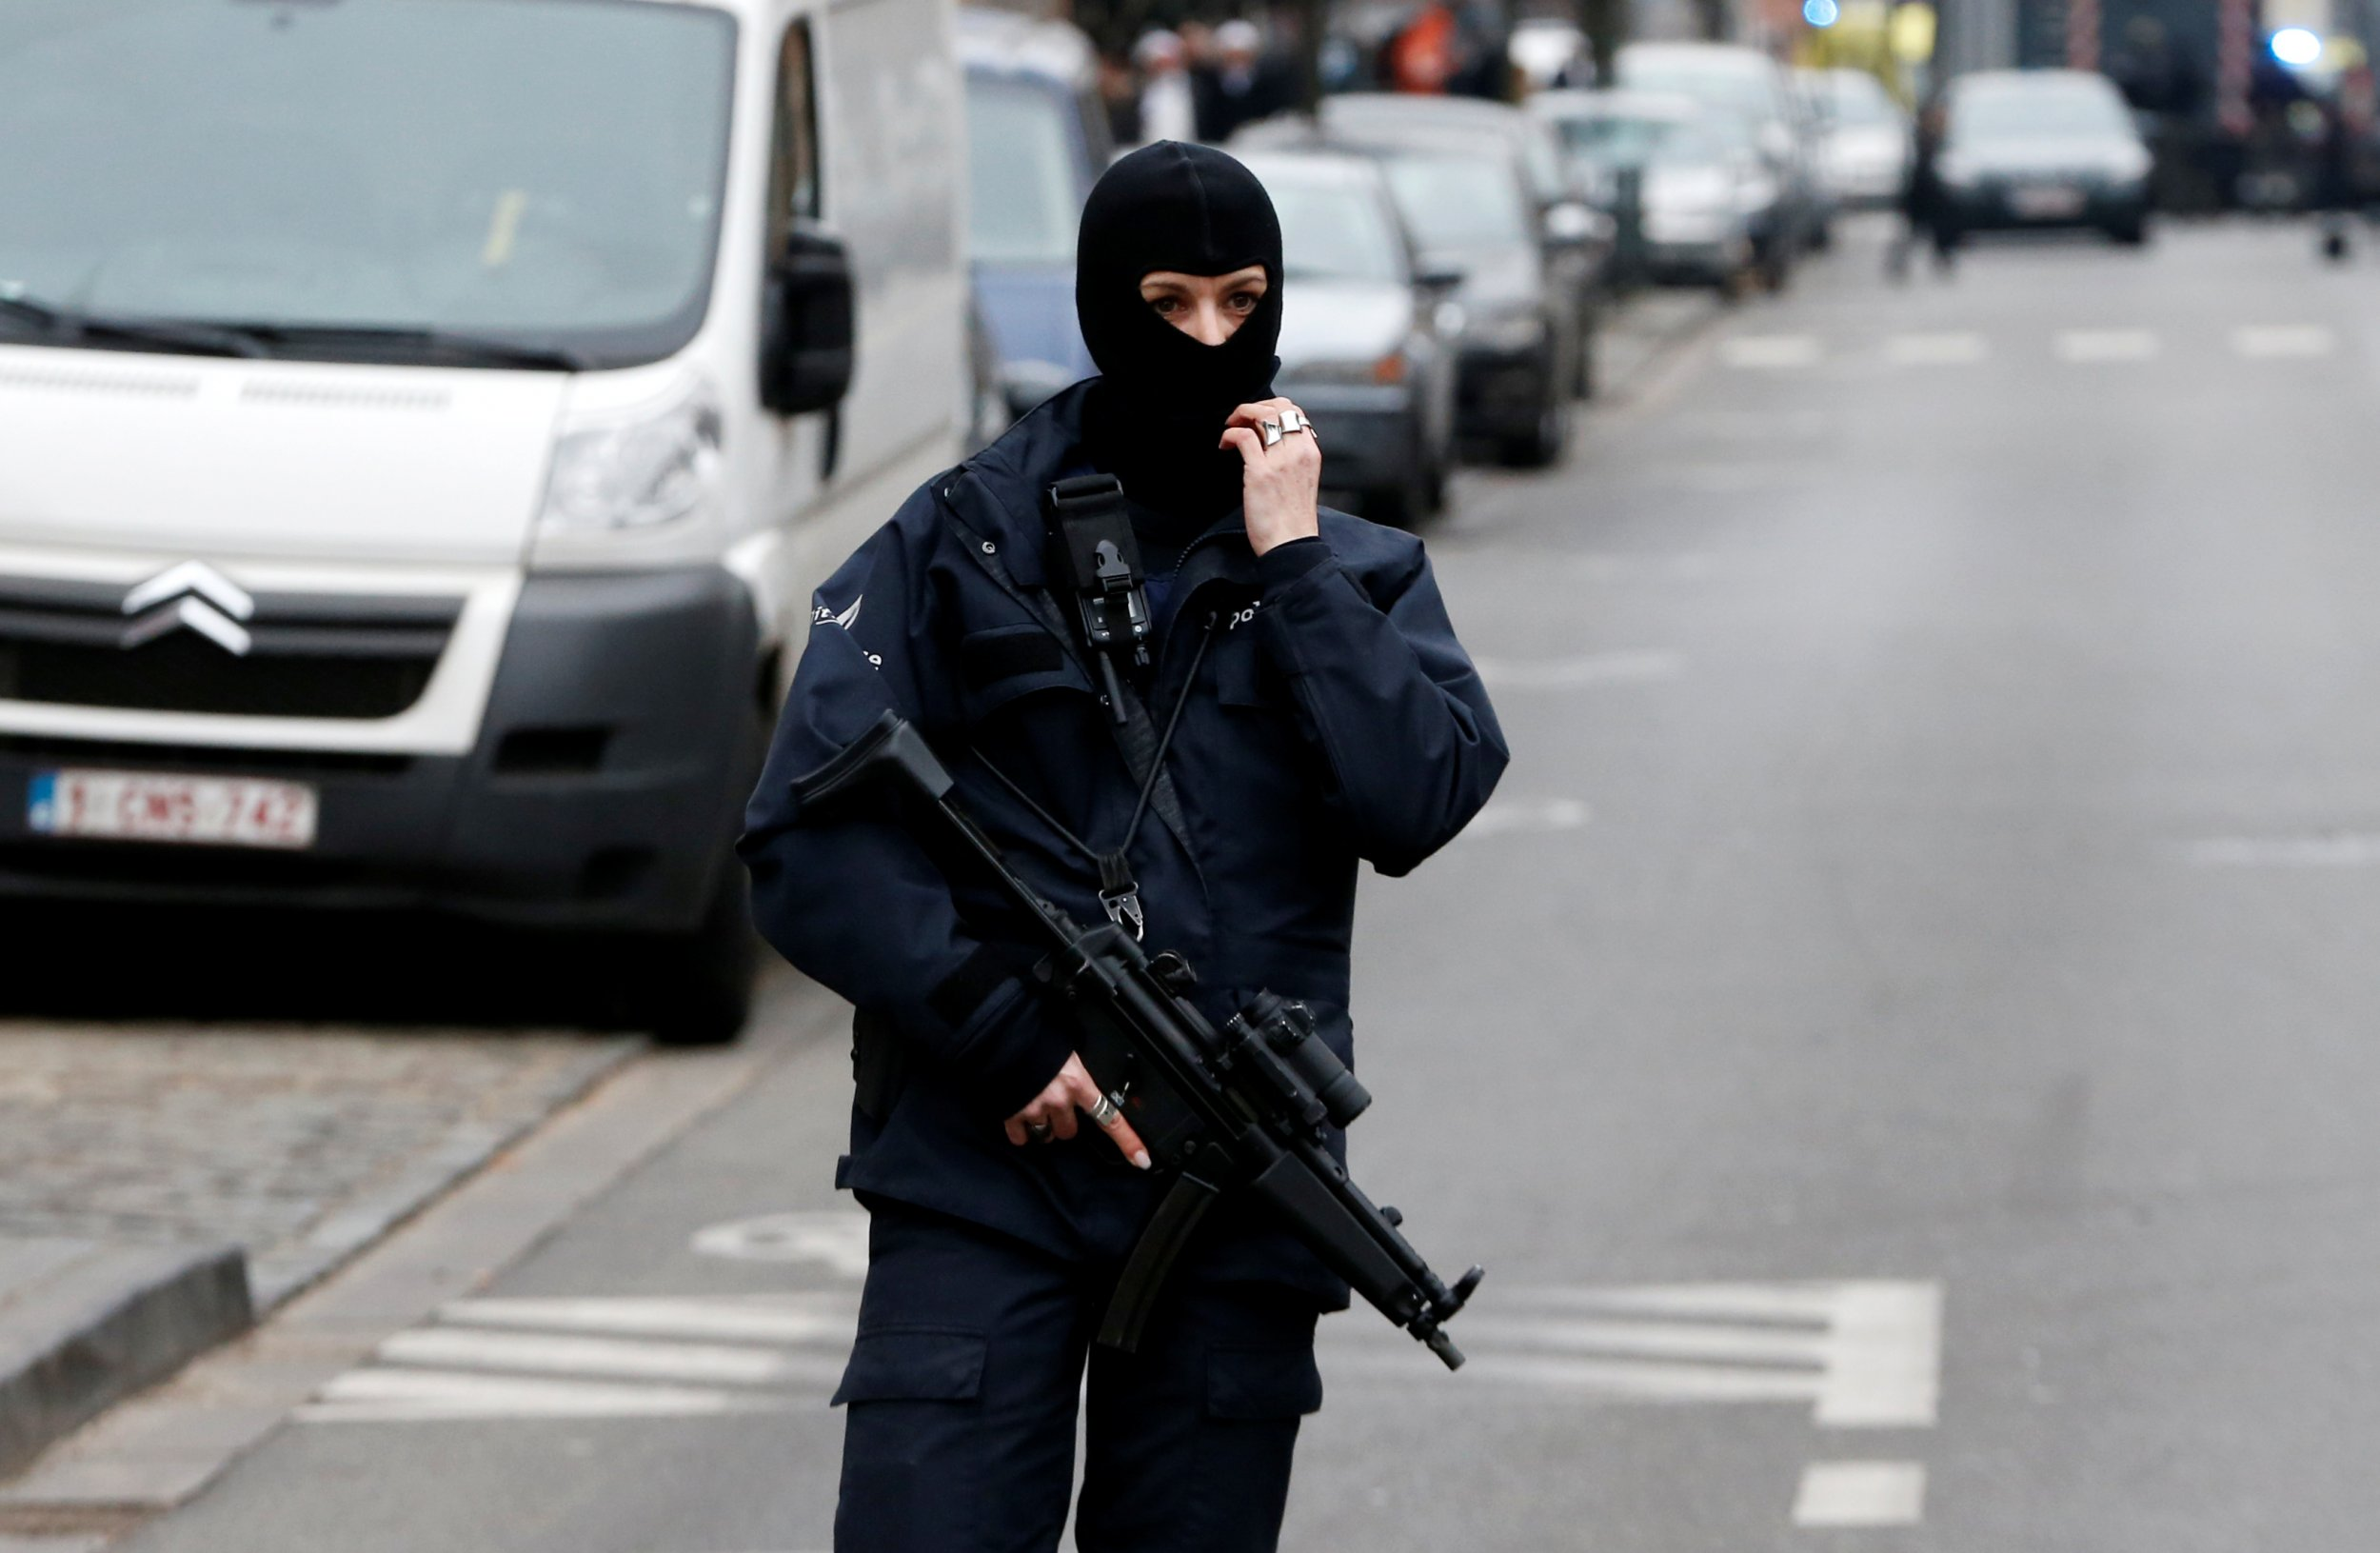 Brussels police officer